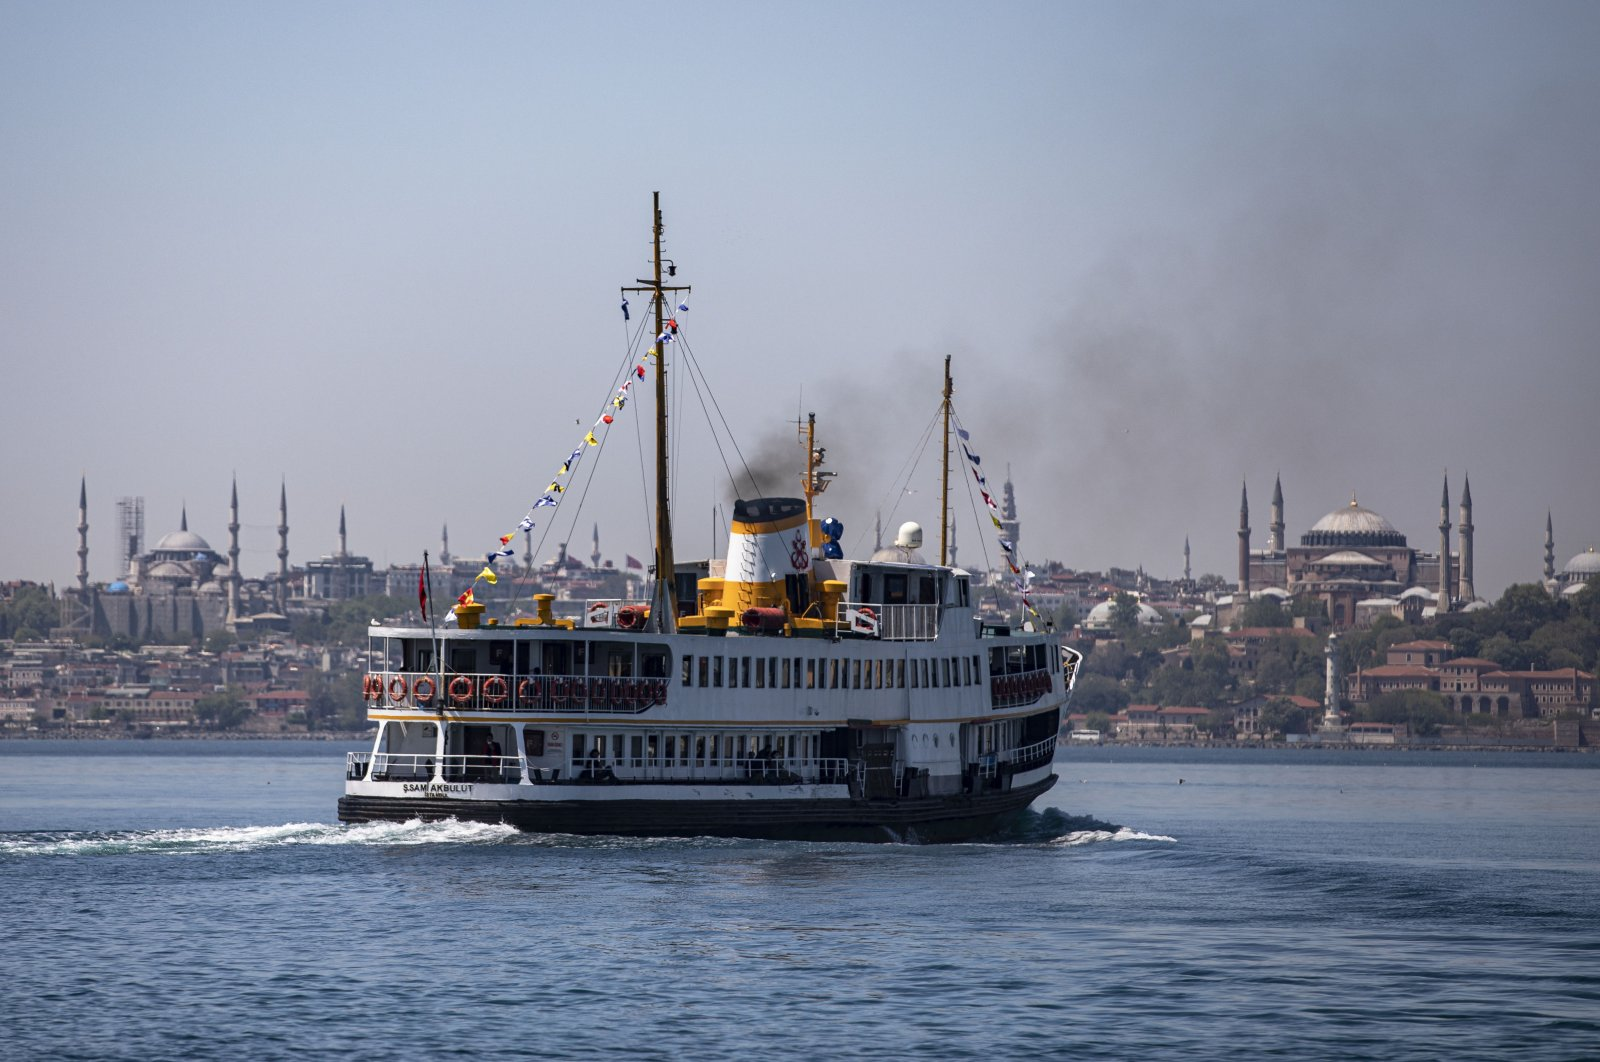 An iconic ferry cruises along with the historical Blue Mosque (L) and Hagia Sophia Grand Mosque (R) visible in the background, Istanbul, Turkey, May 13, 2021. (Photo by Getty Images)